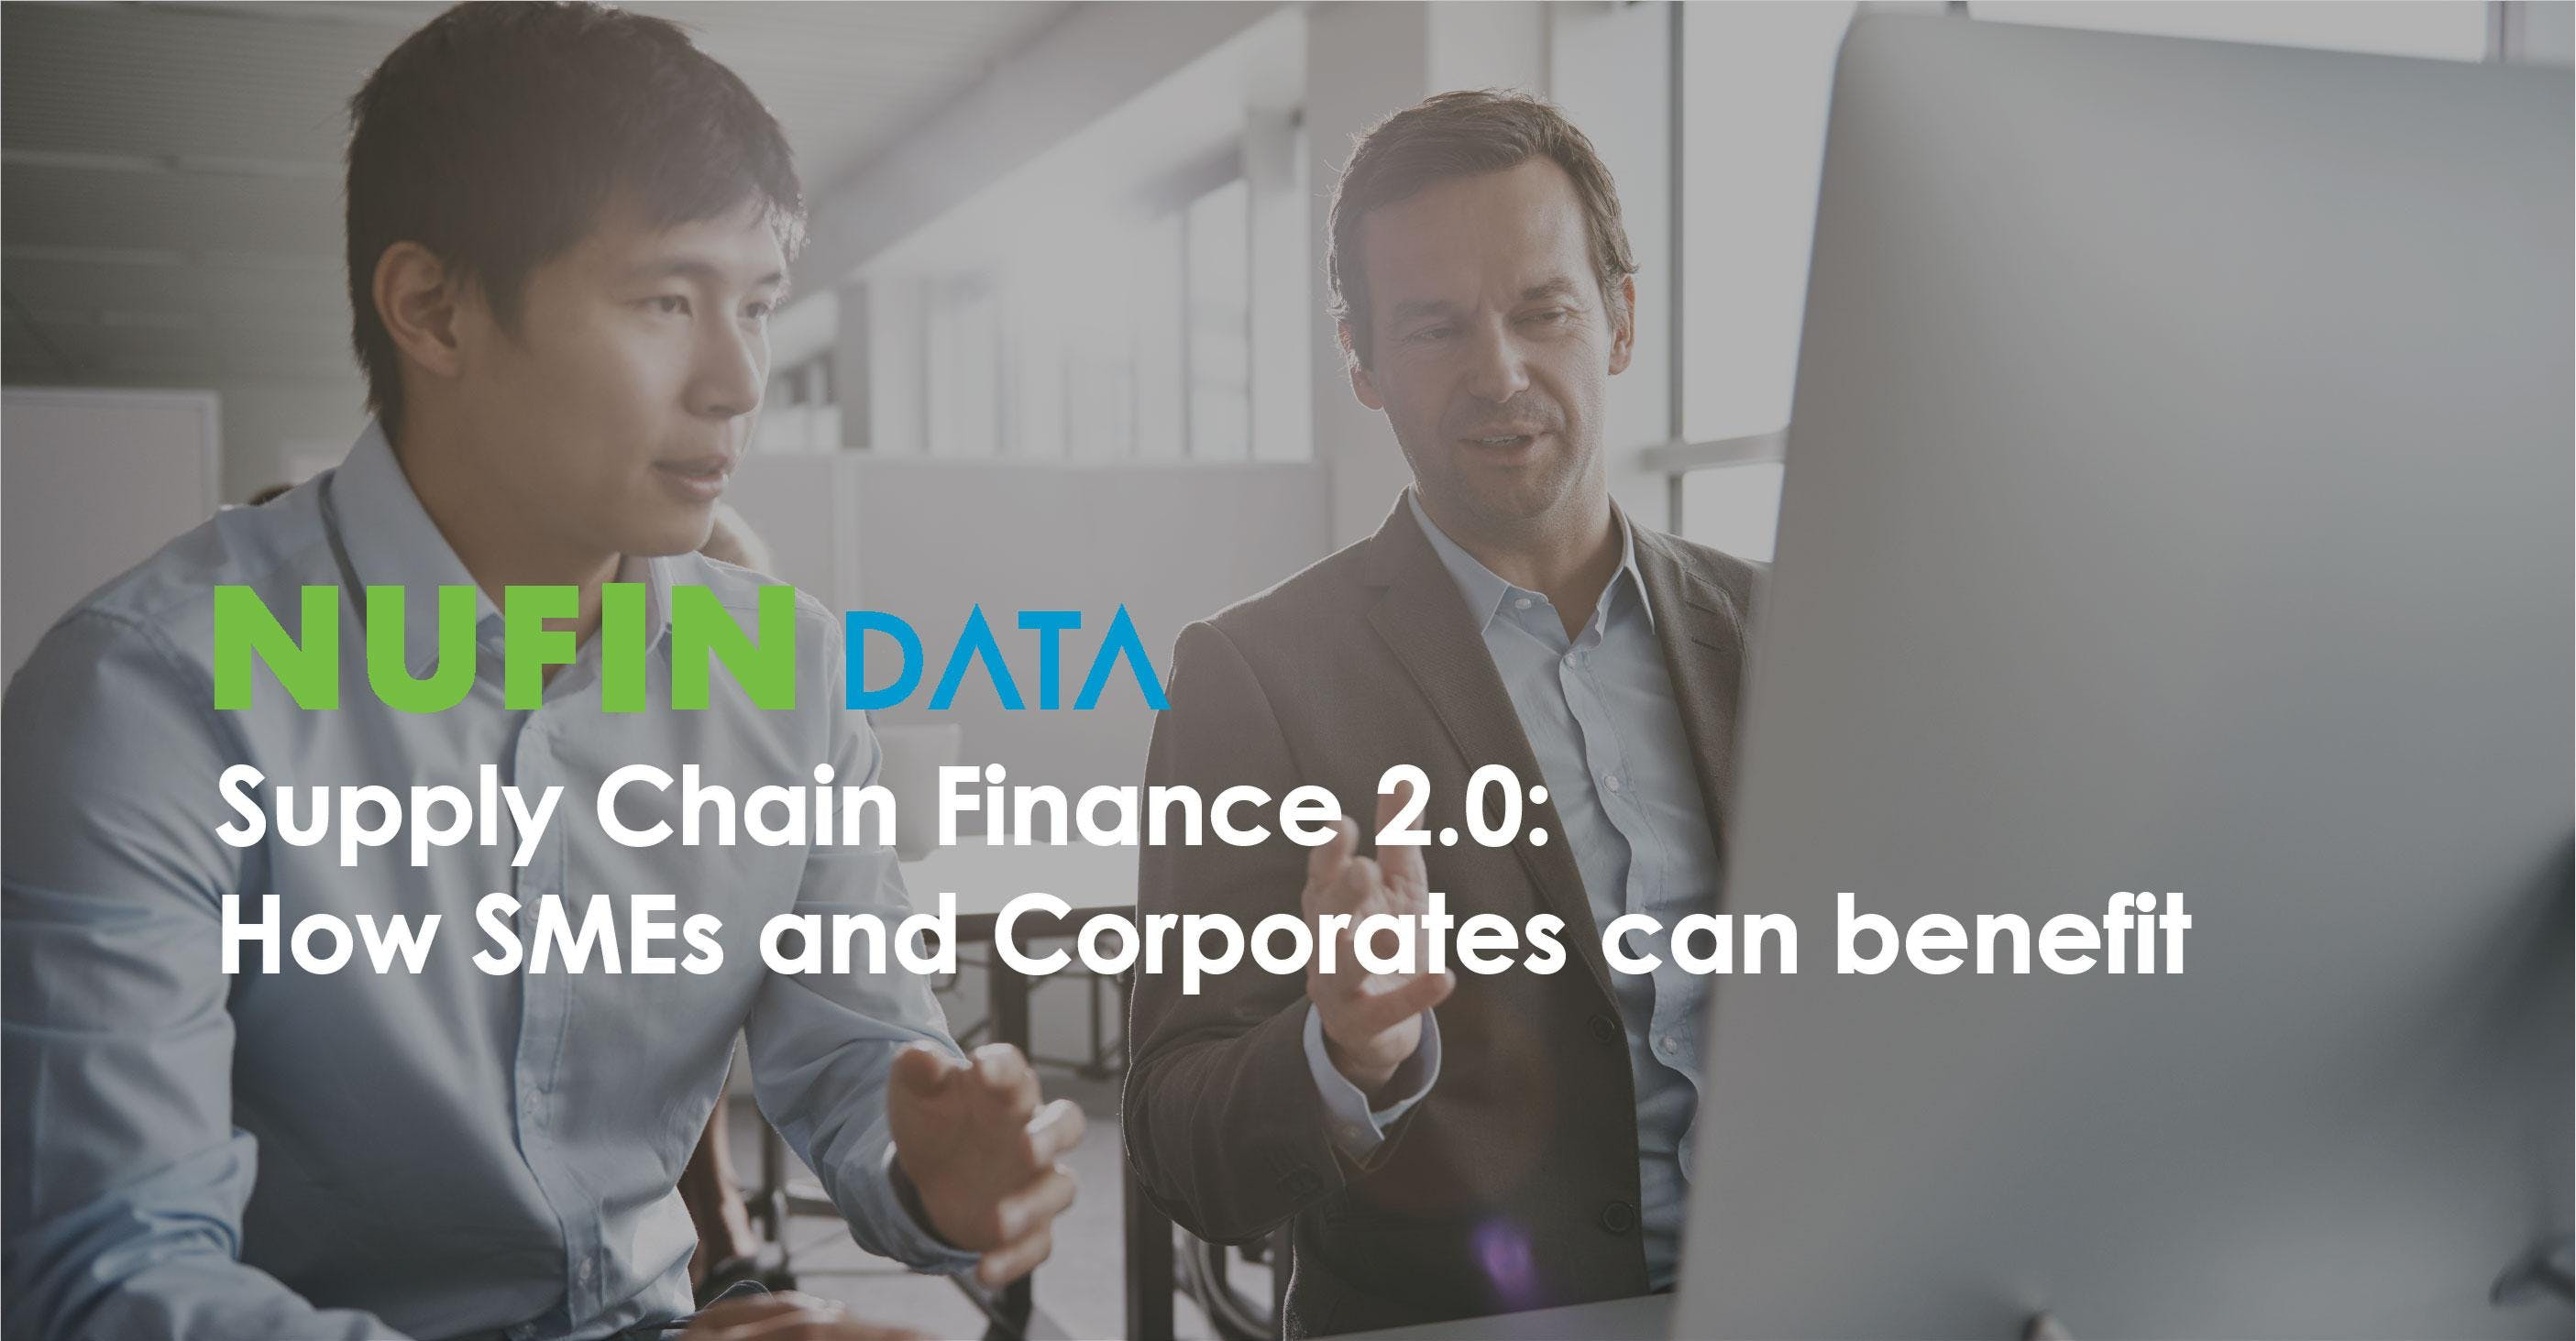 Supply Chain Finance 2.0 How SMEs and Corporates can benefit